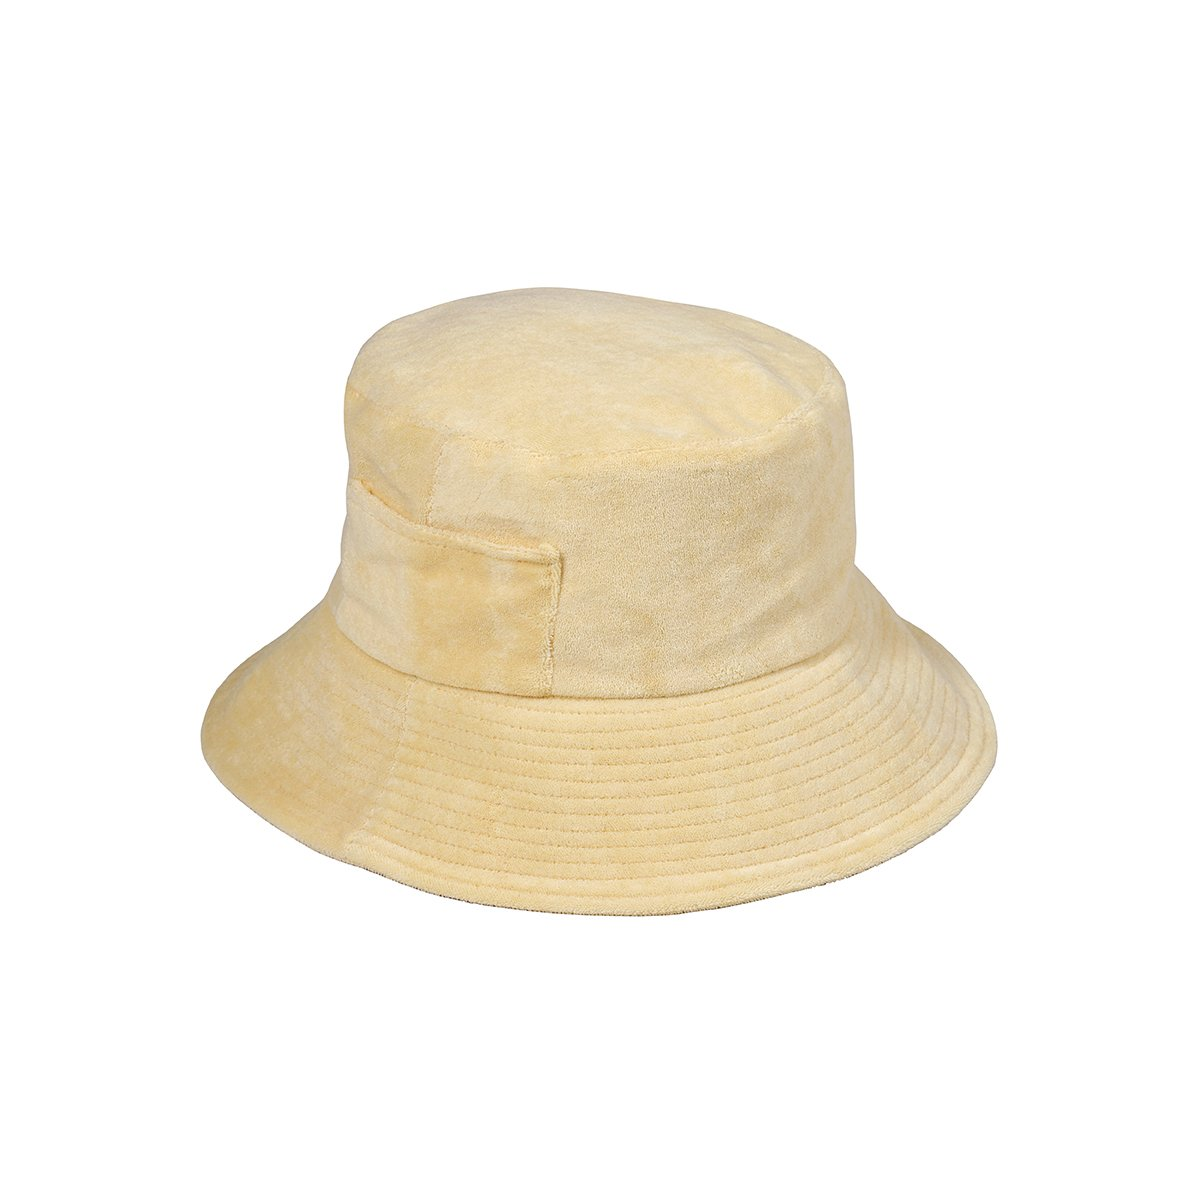 Wave Bucket by Lack of Color, available on lackofcolor.com for $99 Kendall Jenner Hat Exact Product